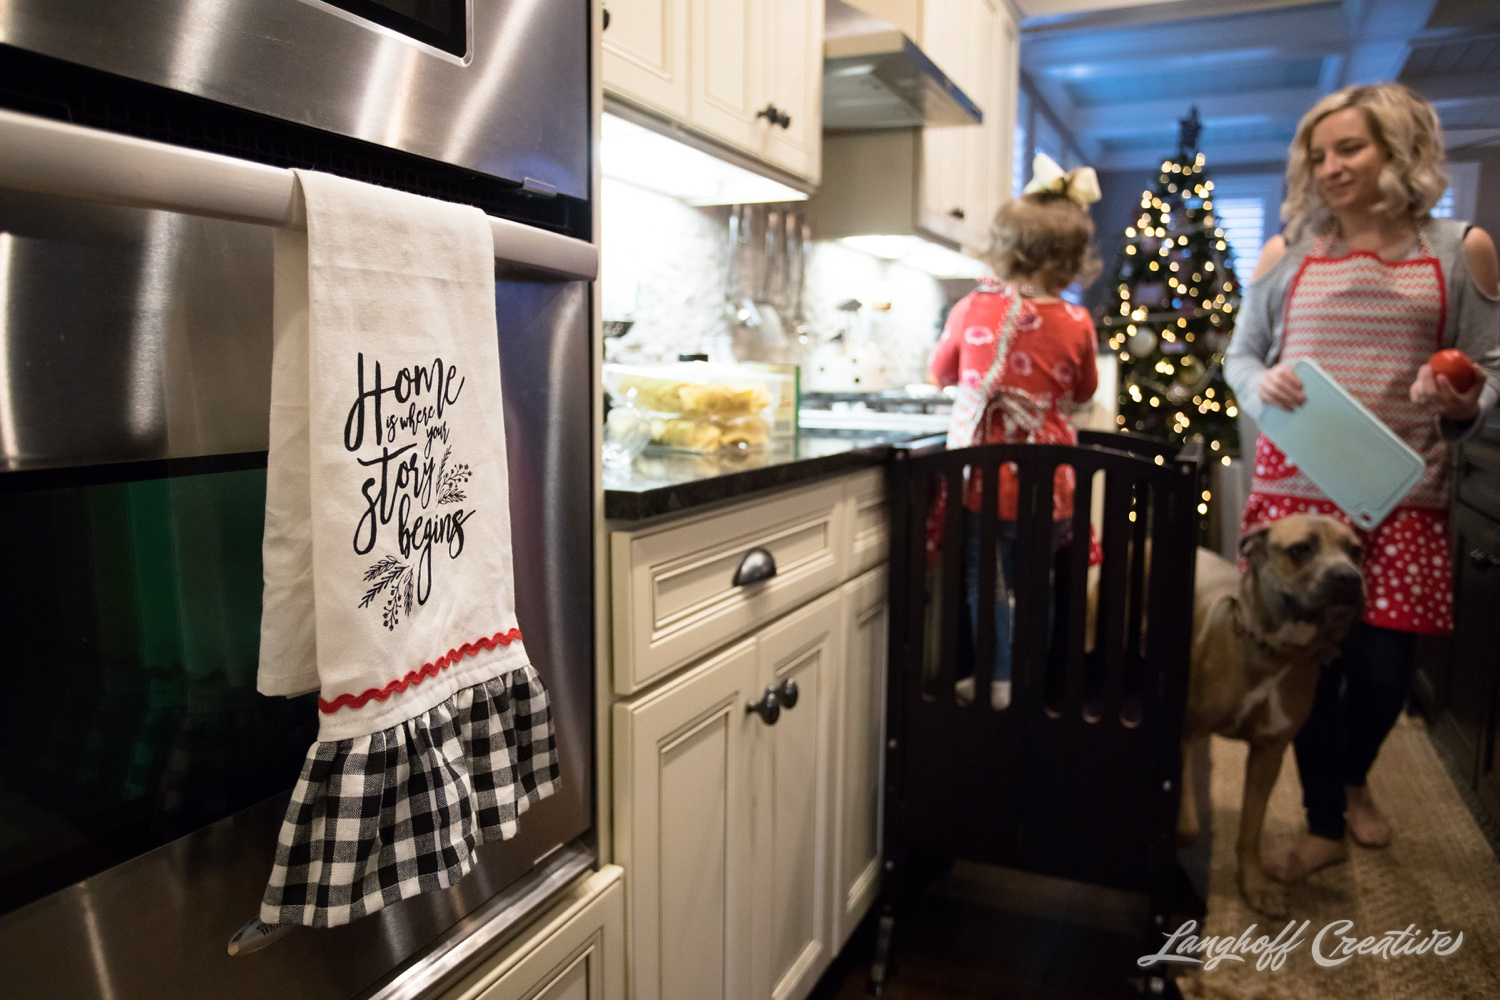 20171125-McGrathChristmas-DayInTheLife-Holidays-LanghoffCreative-RealLifeSession-DocumentaryFamilyPhotography-RDUphotographer-23-photo.jpg